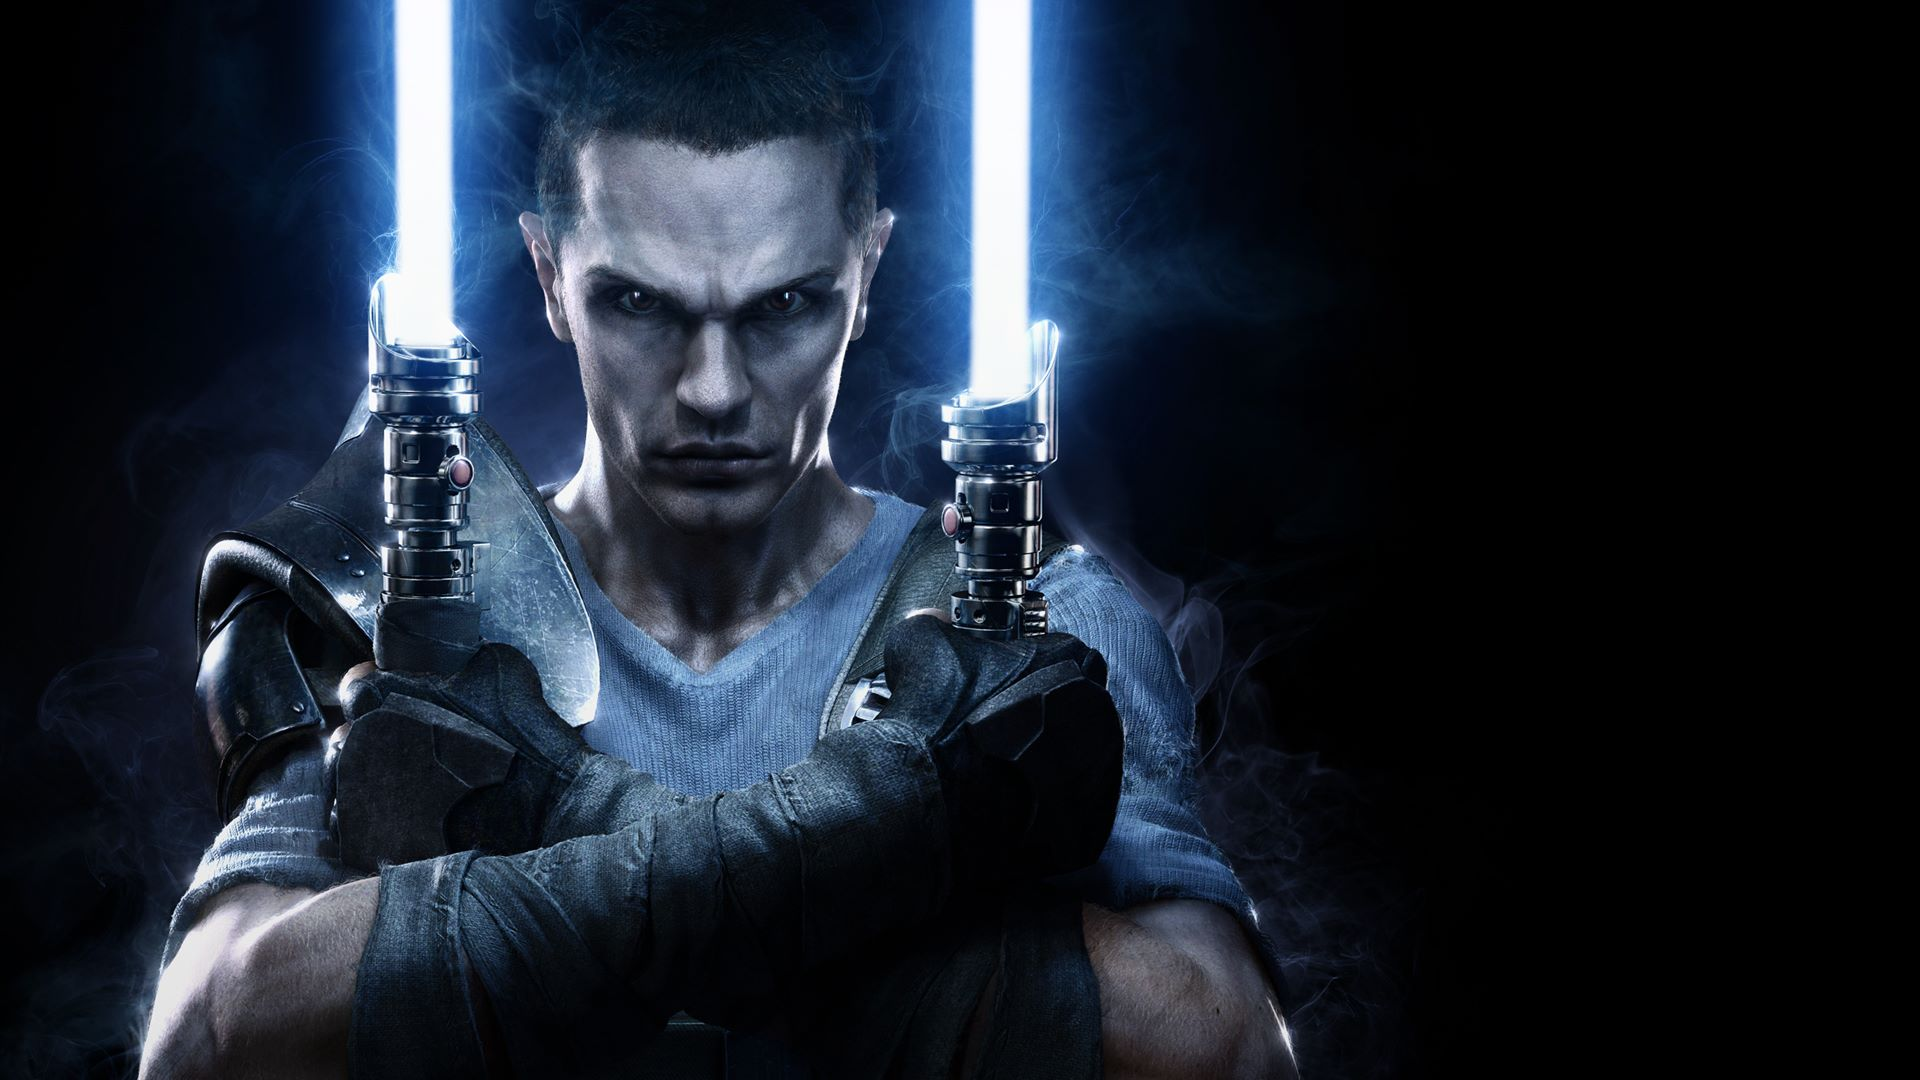 star wars the force unleashed download full game pc